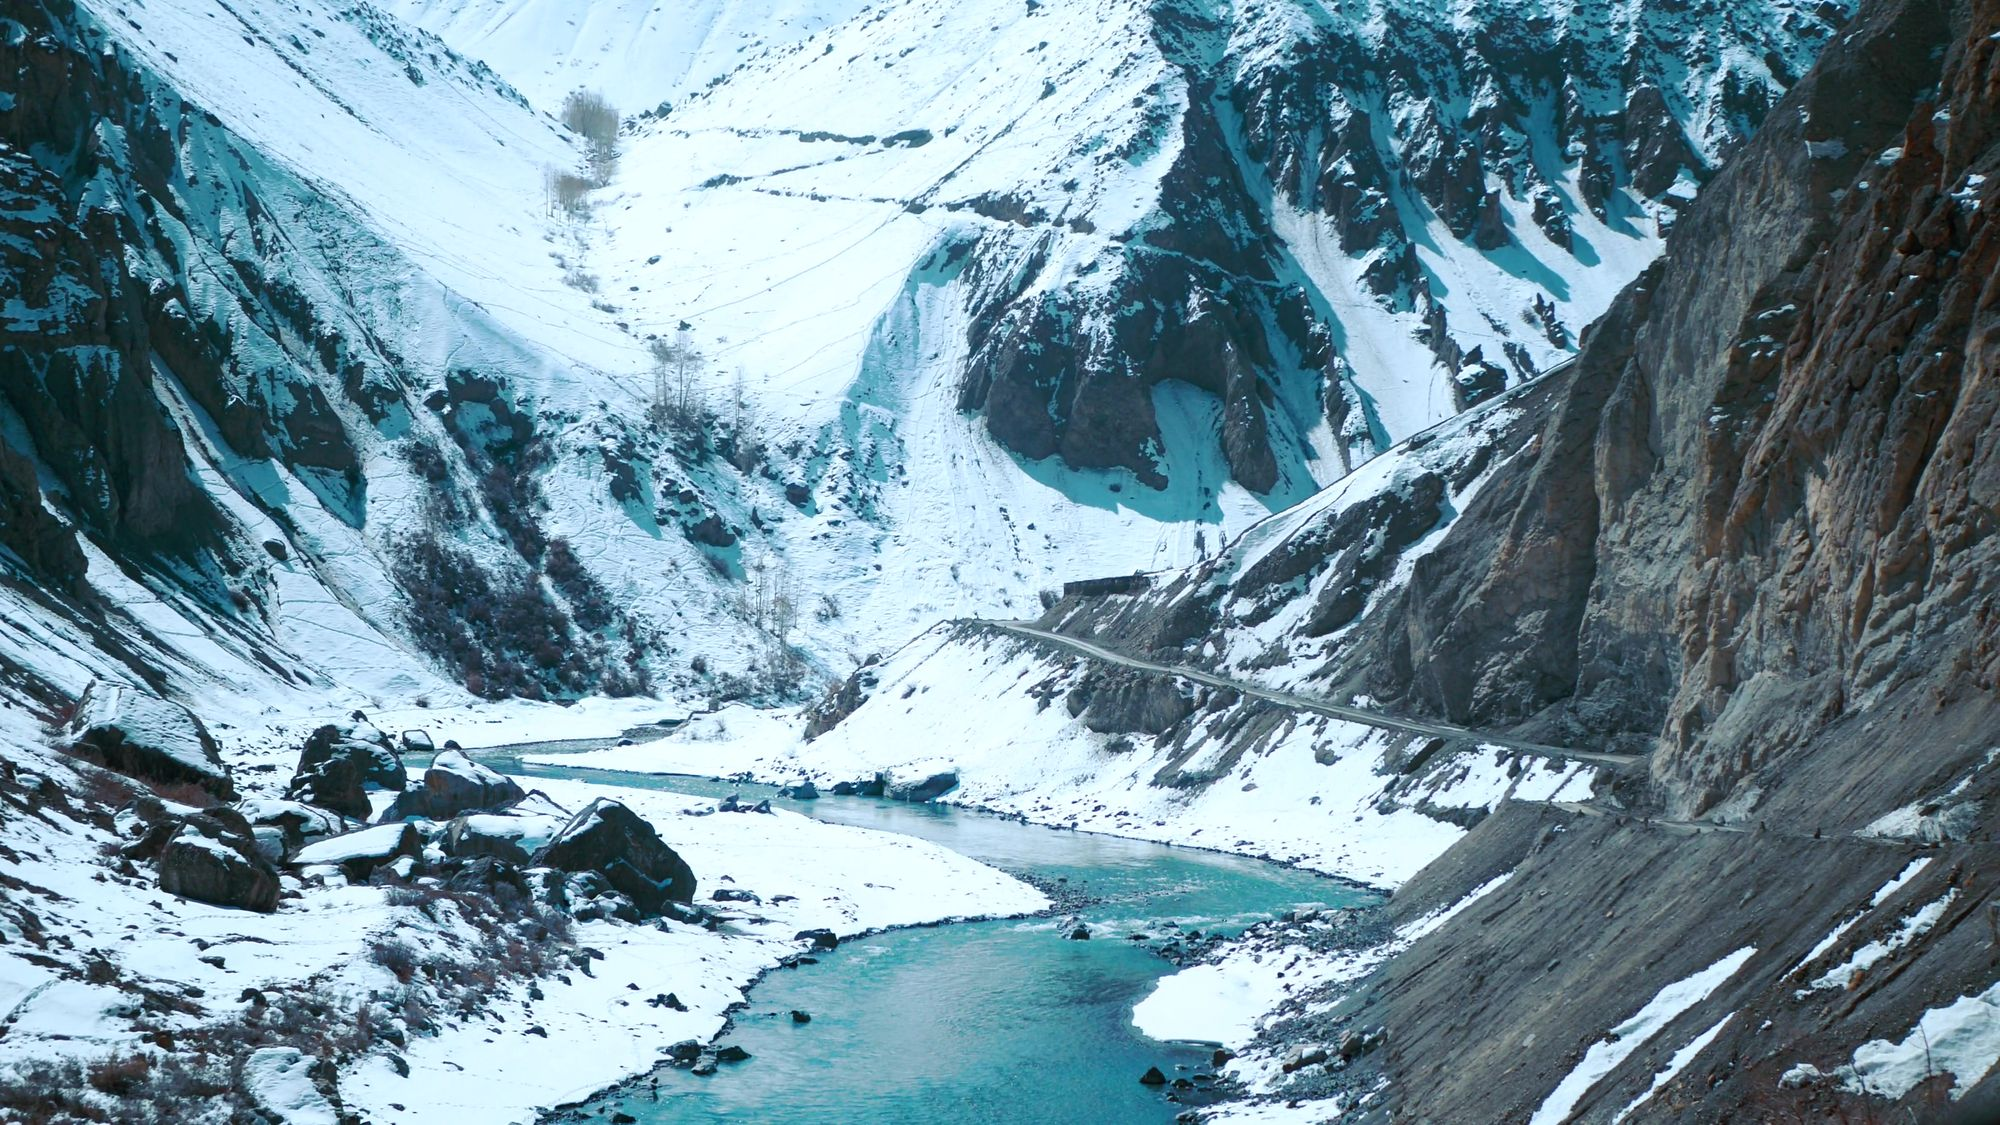 Spiti river flowing through snow covered valley